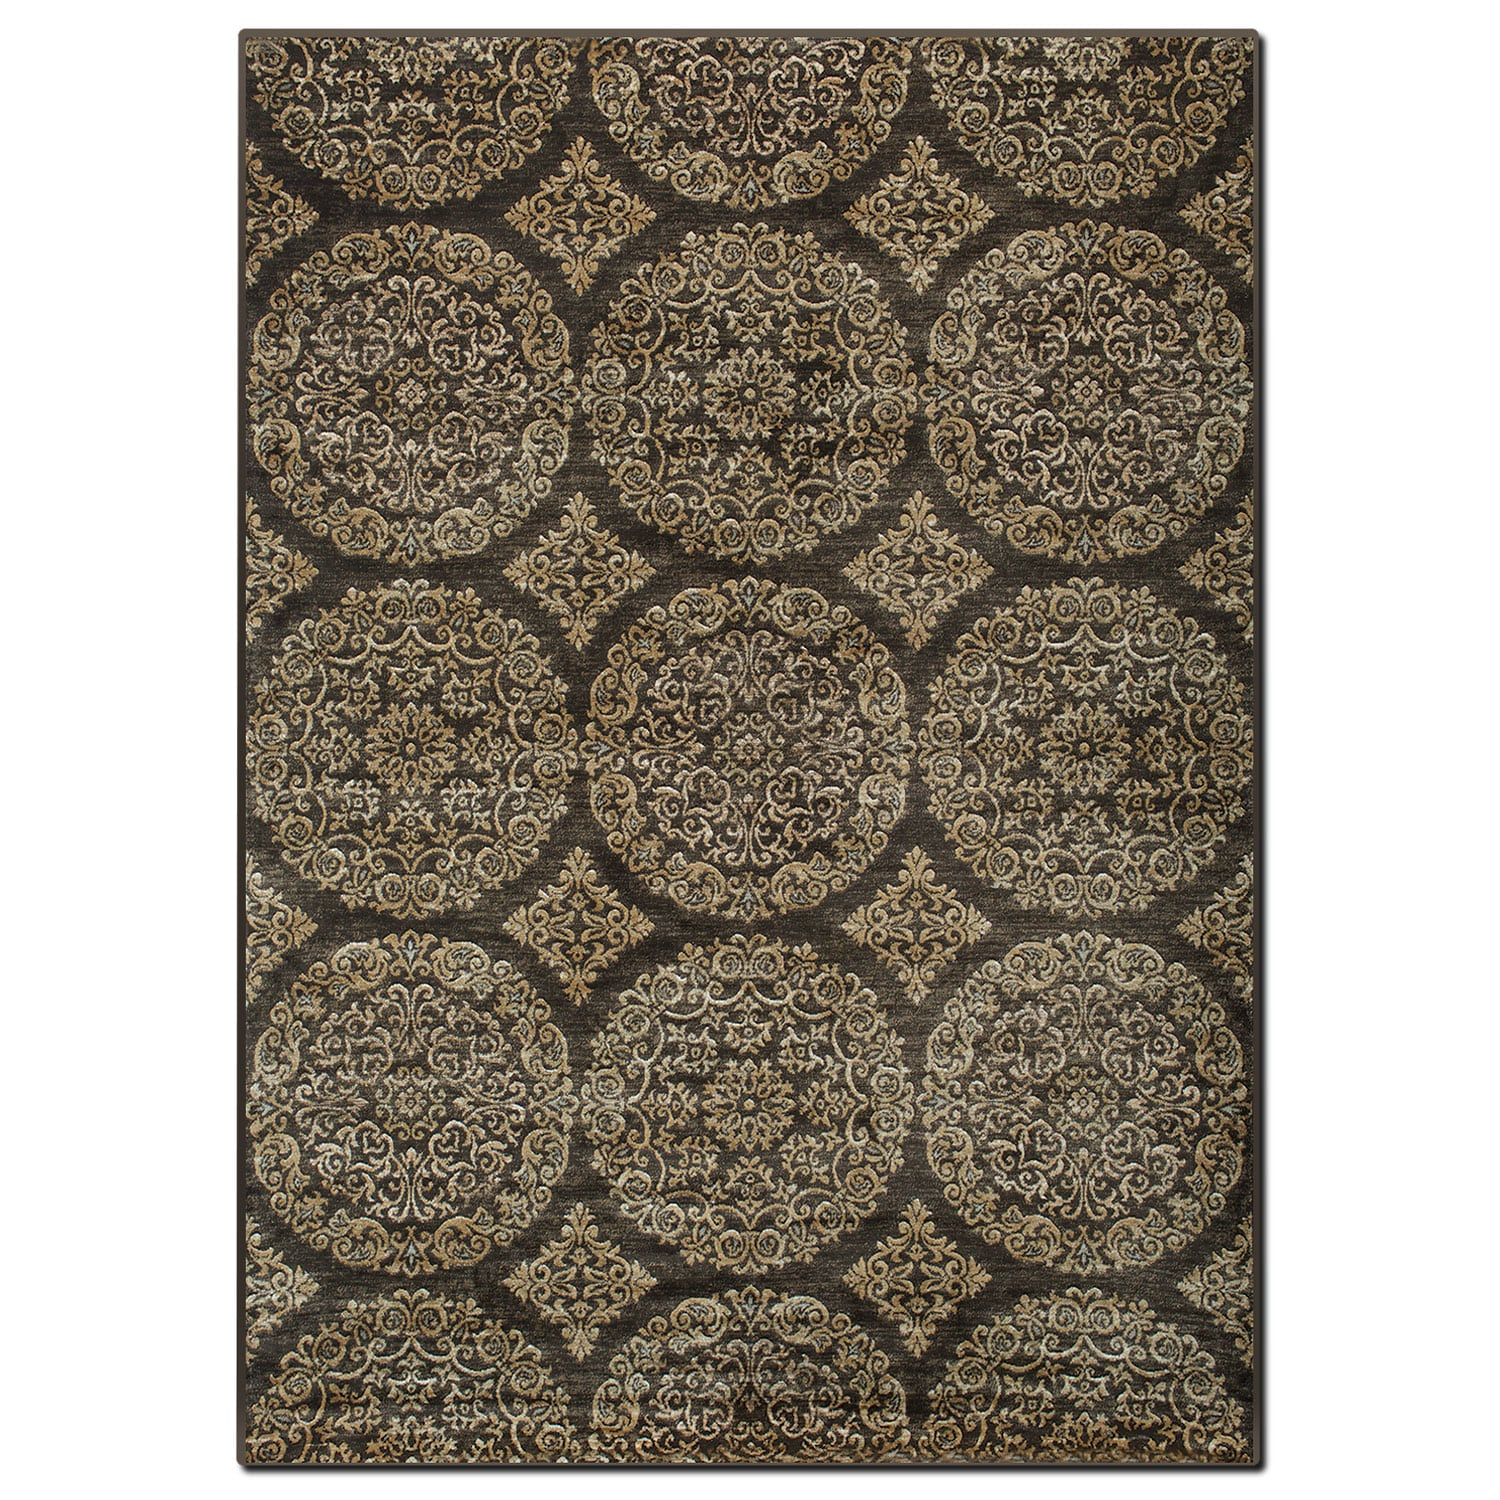 Rugs - Sonoma 8' x 10' Area Rug - Brown